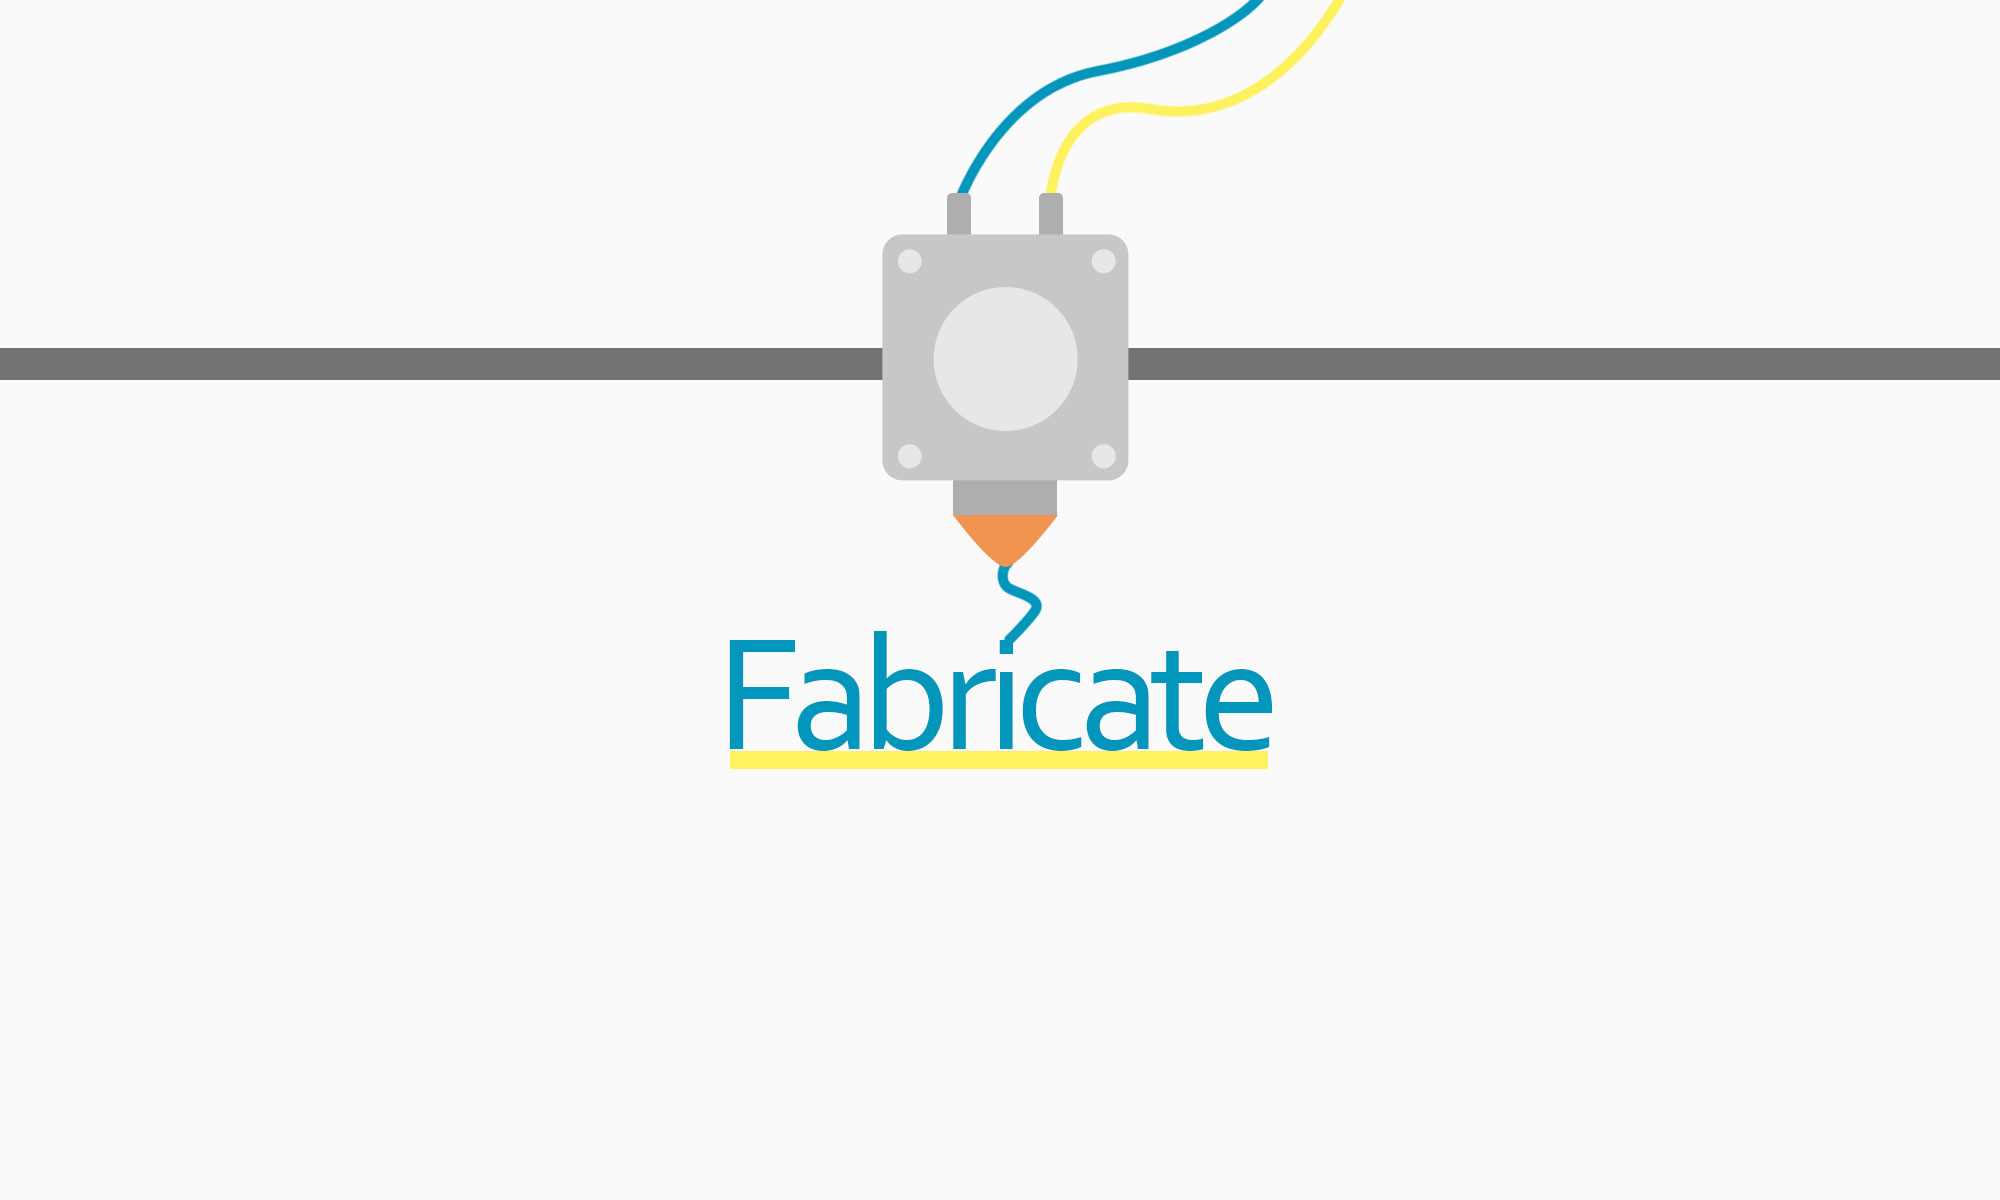 Fabricate at Robocraze, TIF Labs